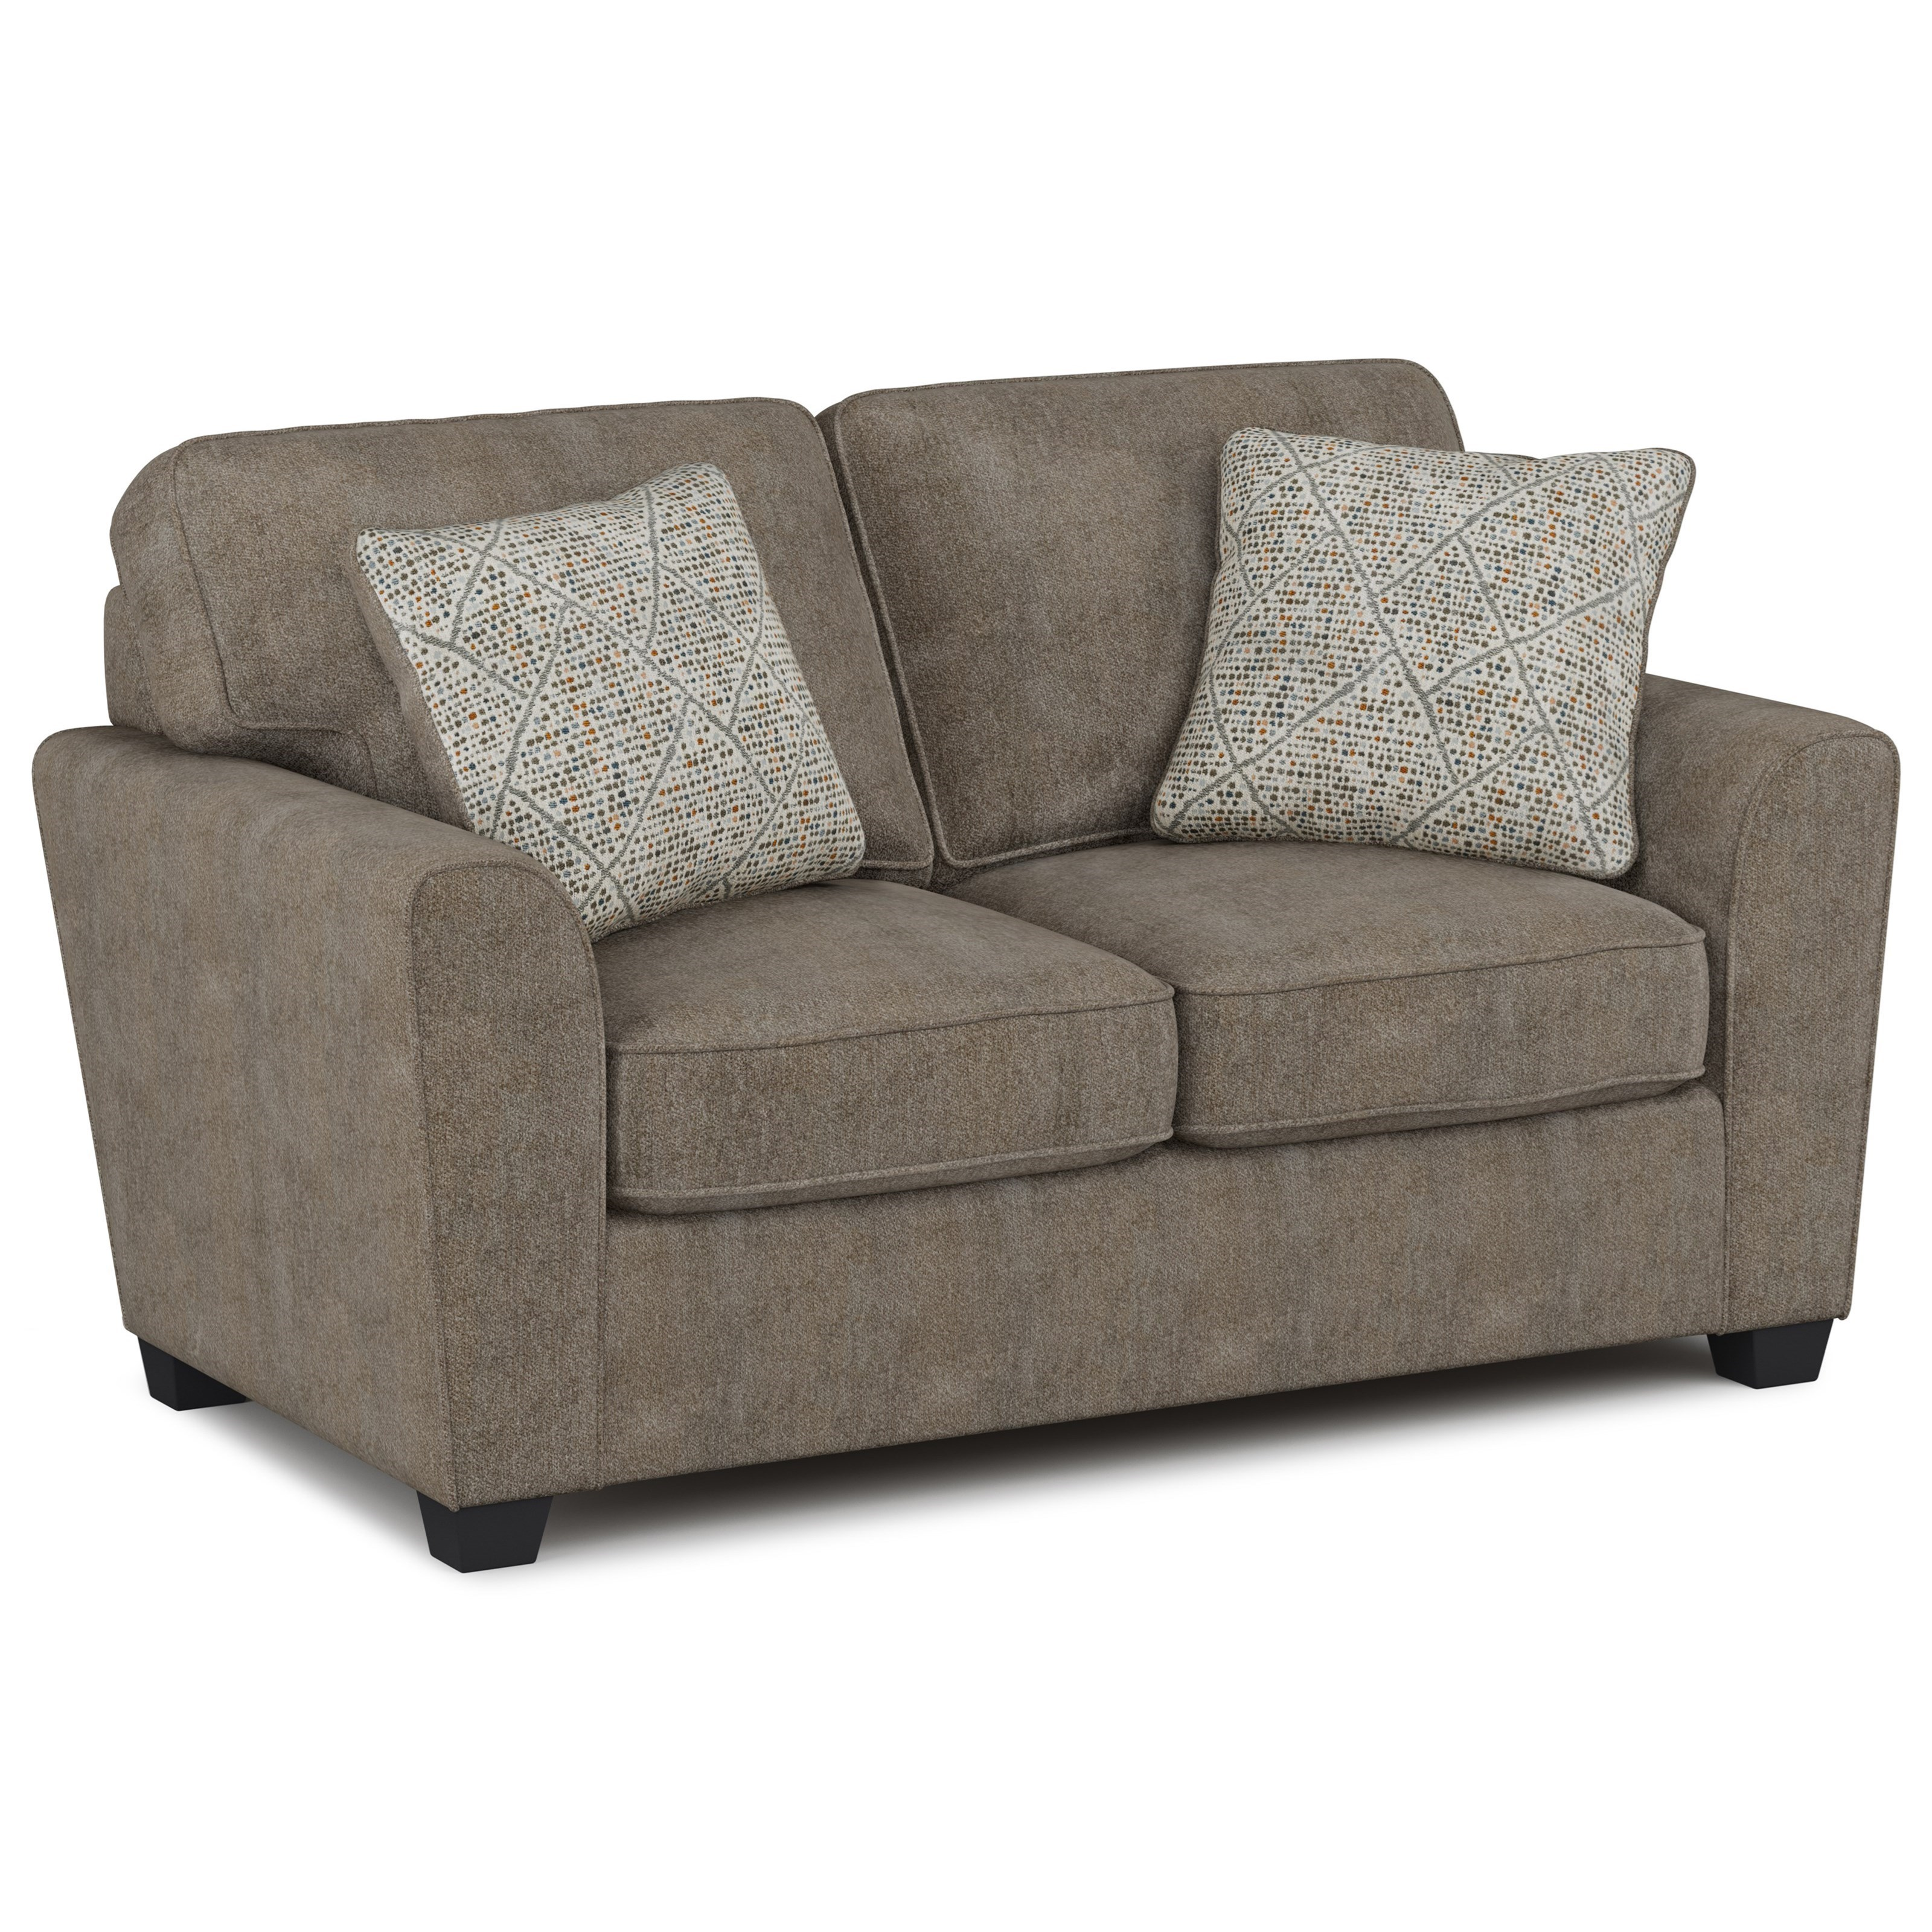 Bodhi Loveseat by Sunset Home at Walker's Furniture